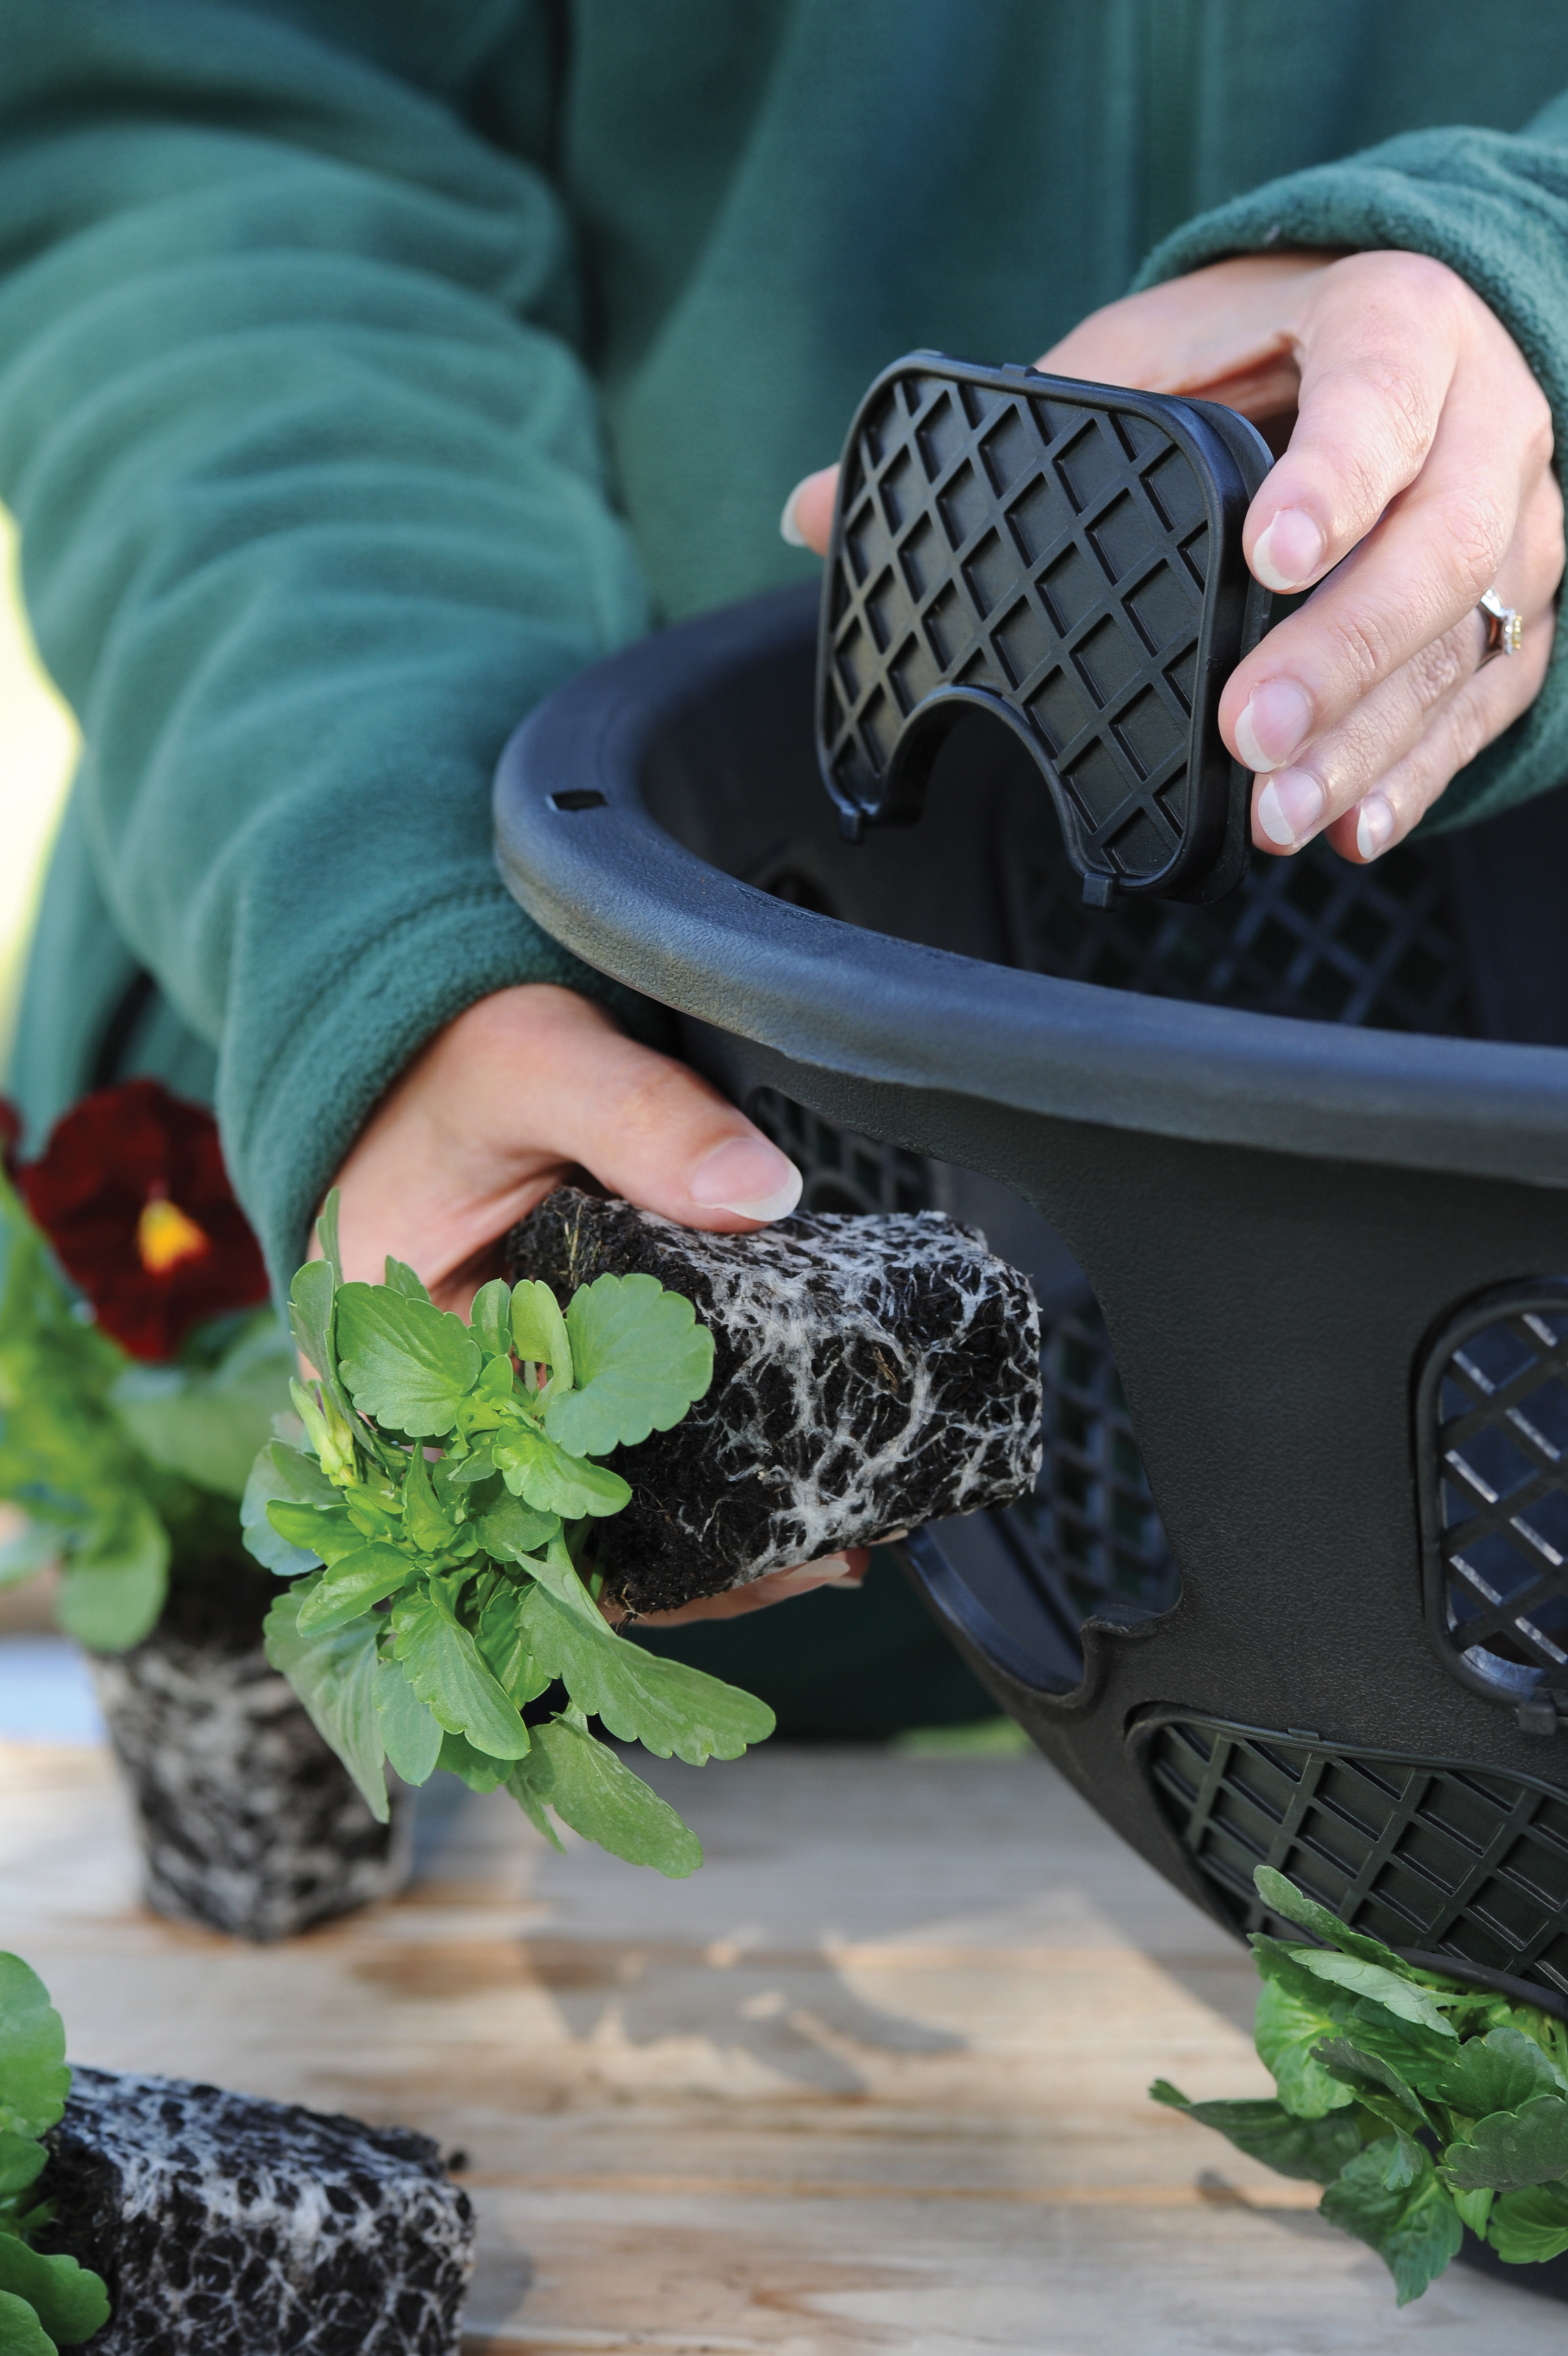 Plug plants being planted into hanging baskets (Thompson & Morgan/PA)